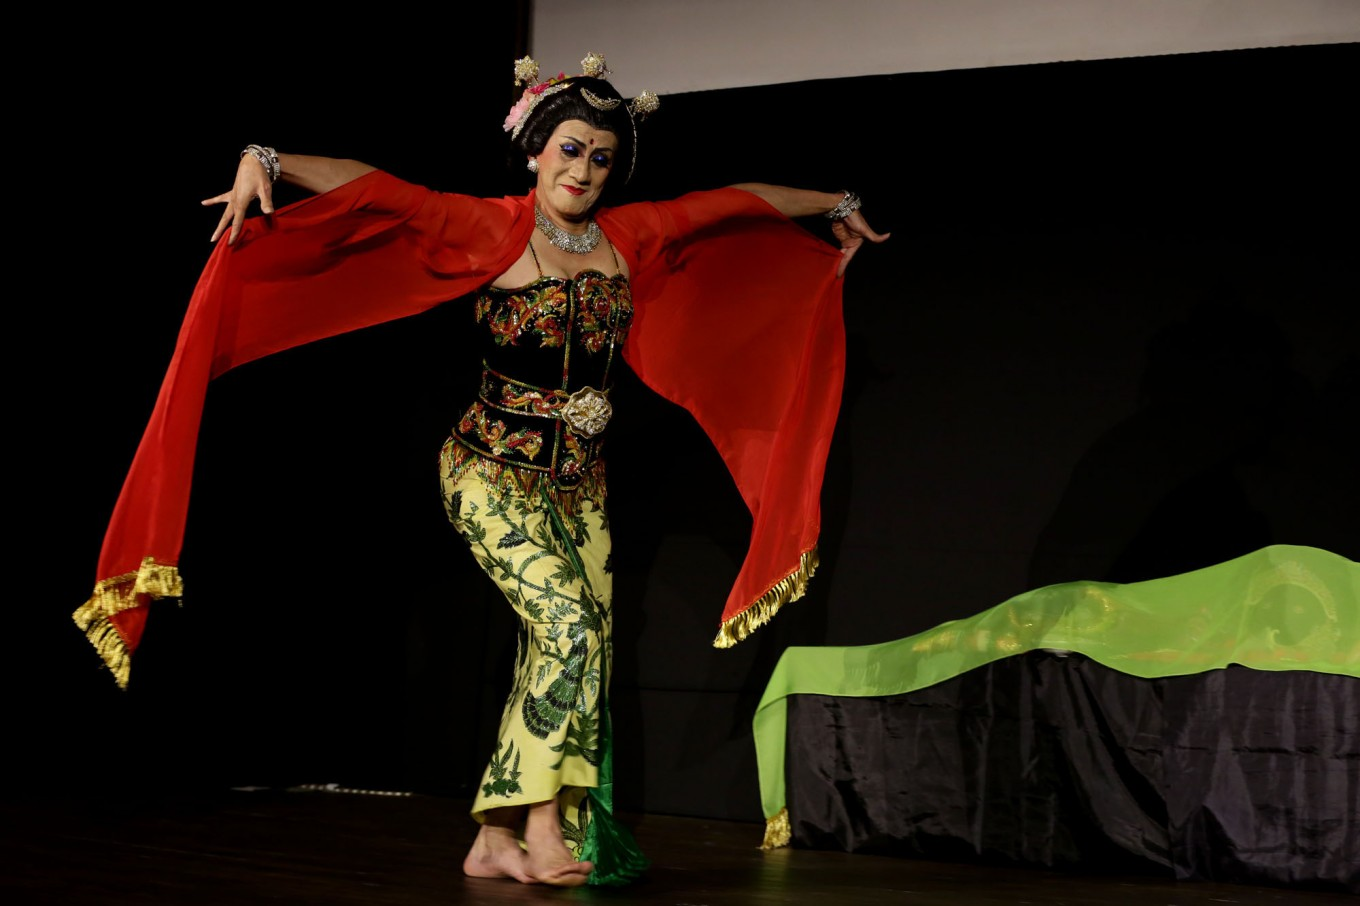 Dancer Didik Nini Thowok hopes to preserve cross-gender performance culture